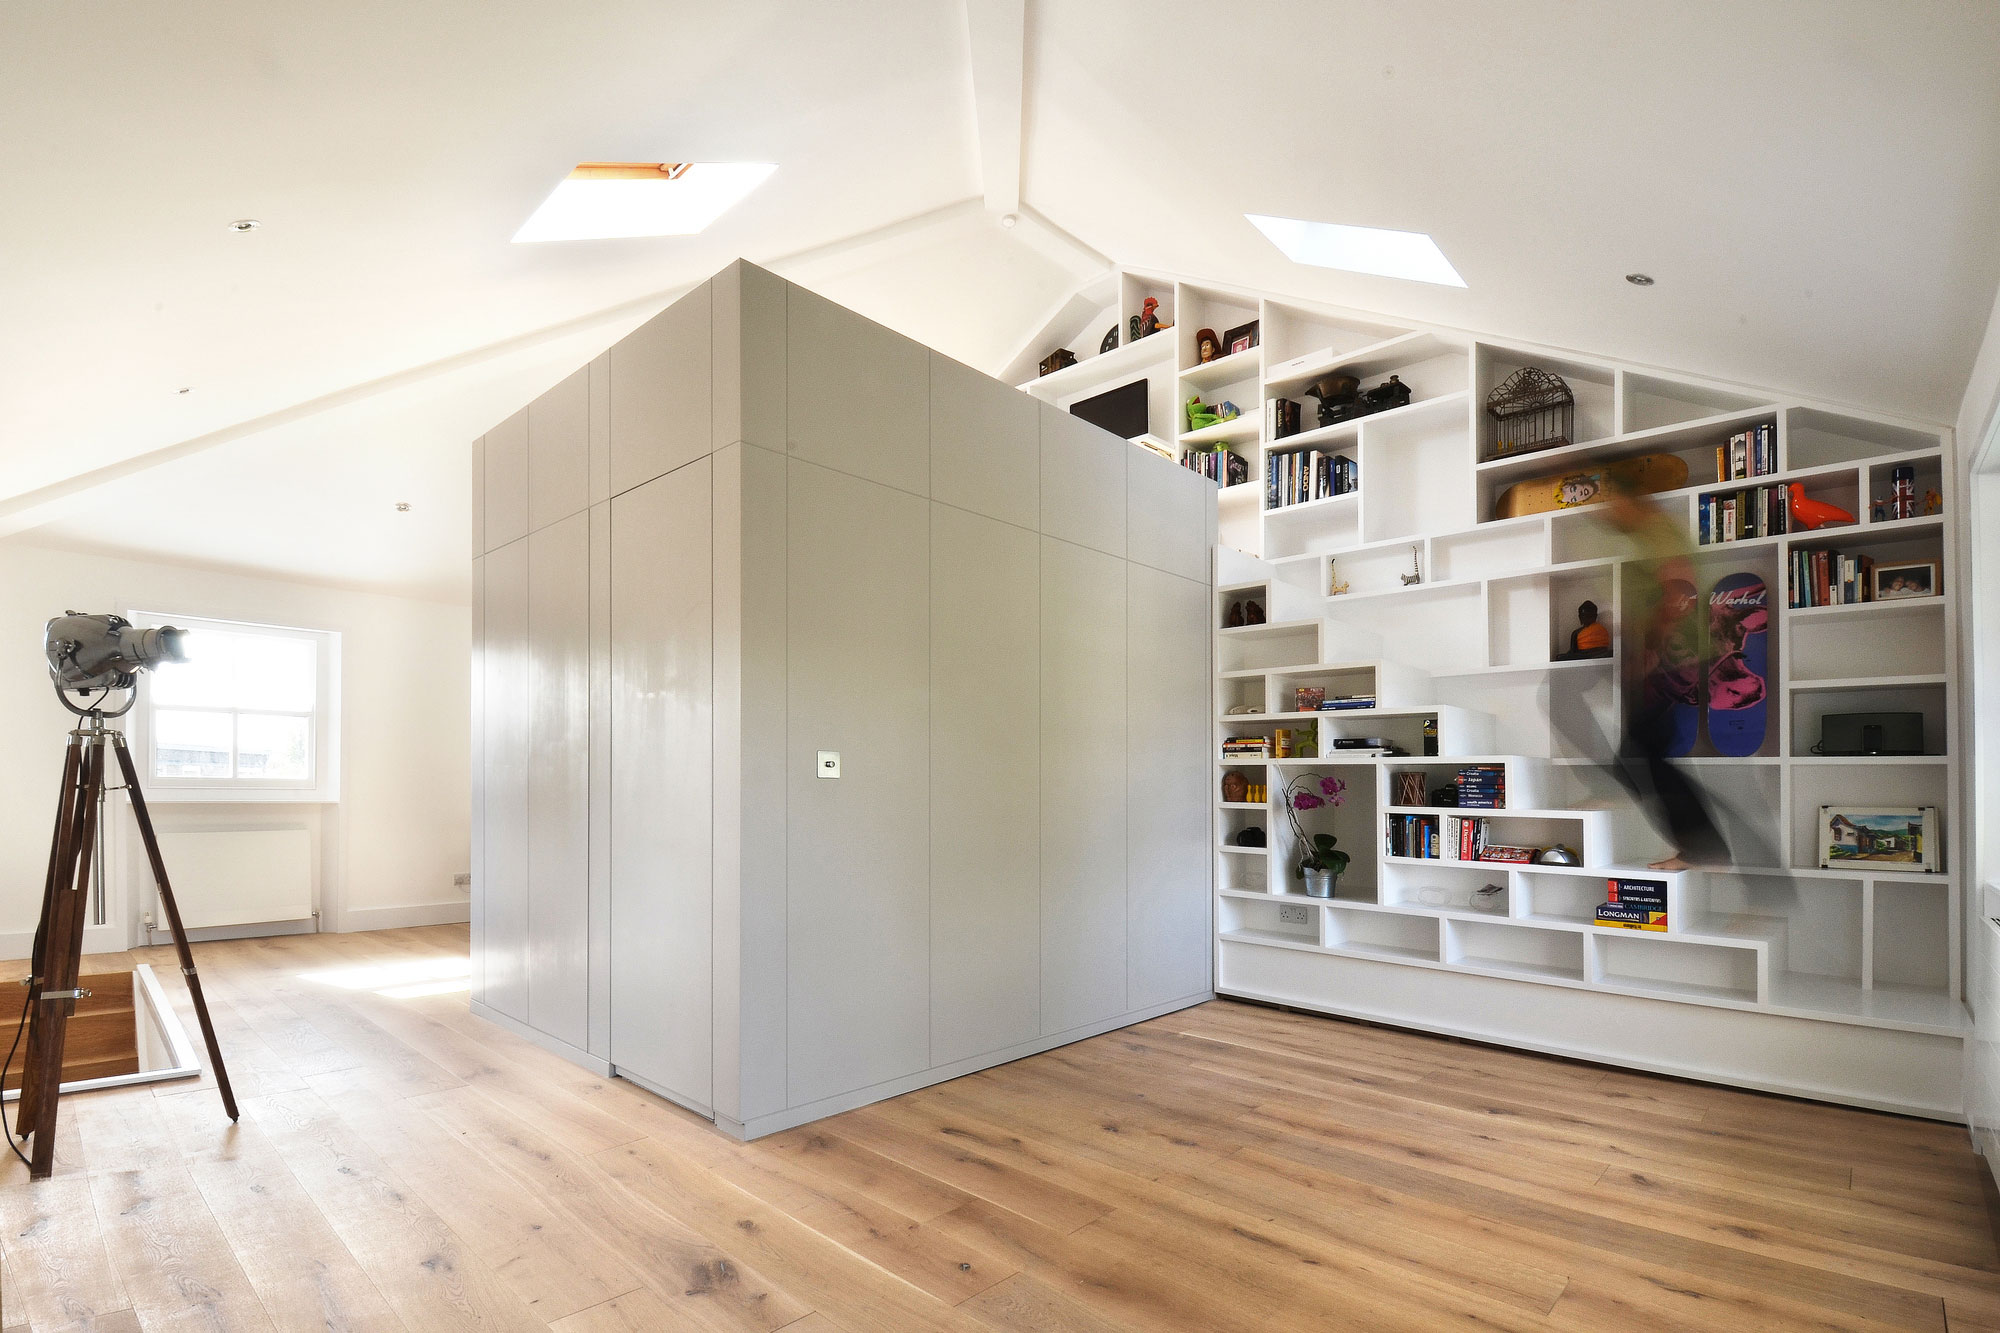 loft-space-in-camden-07